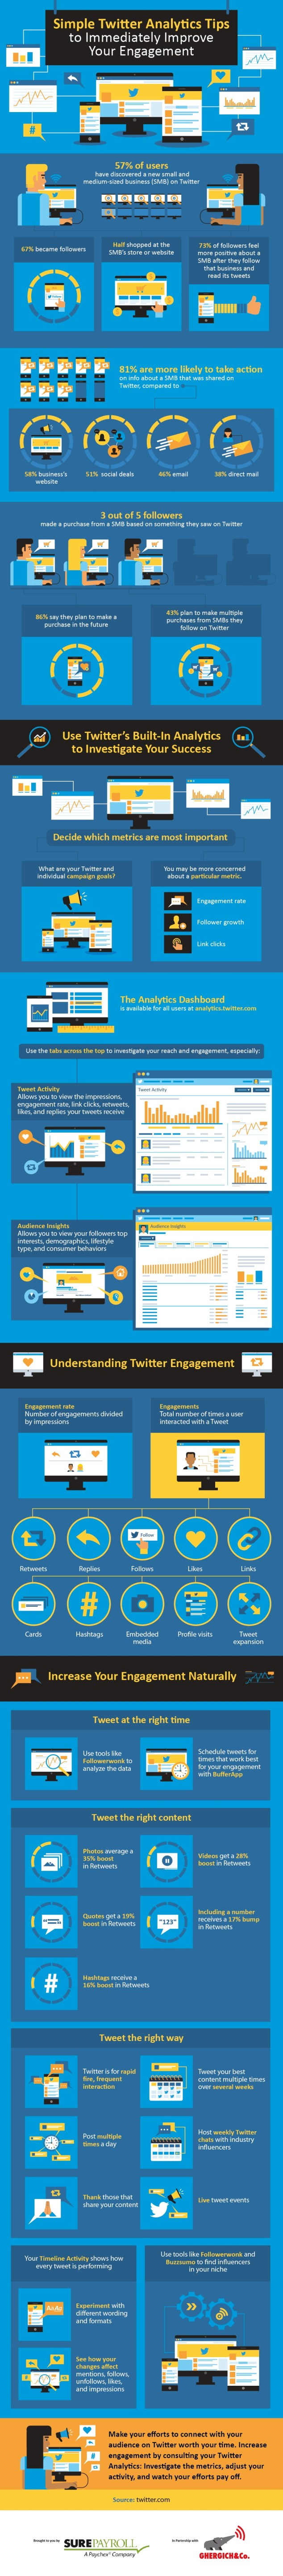 https://i0.wp.com/effectiveinboundmarketing.com/wp-content/uploads/2017/06/simple-twitter-analytics-tips_infographic.jpg?resize=634%2C5768